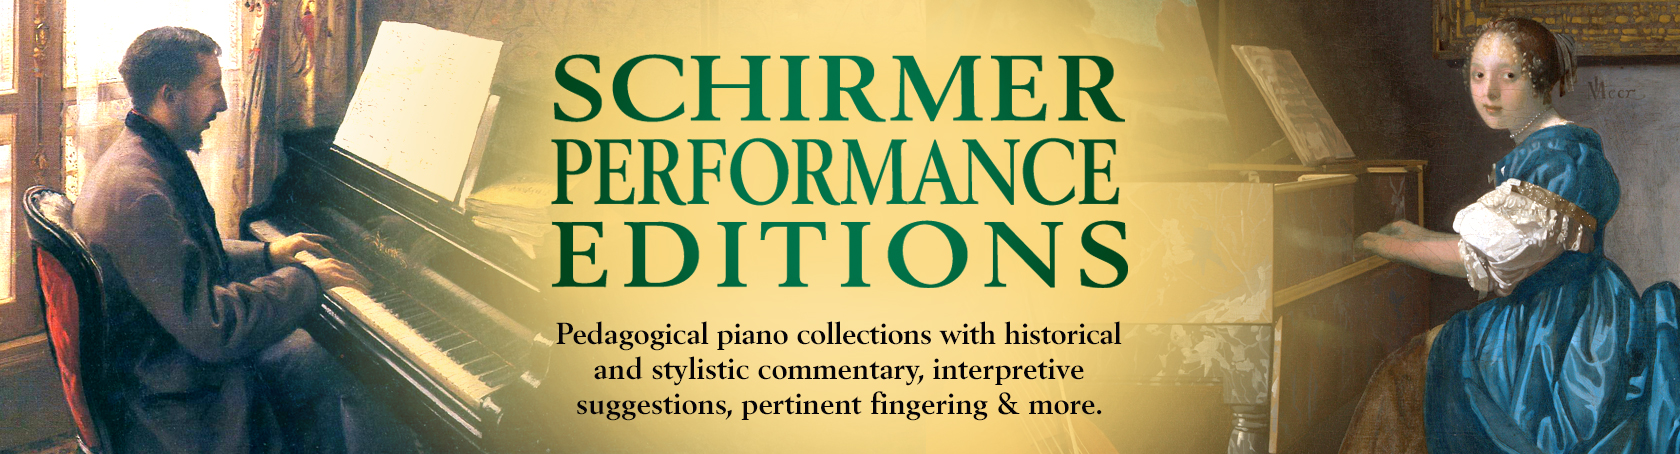 Schirmer Performance Editions